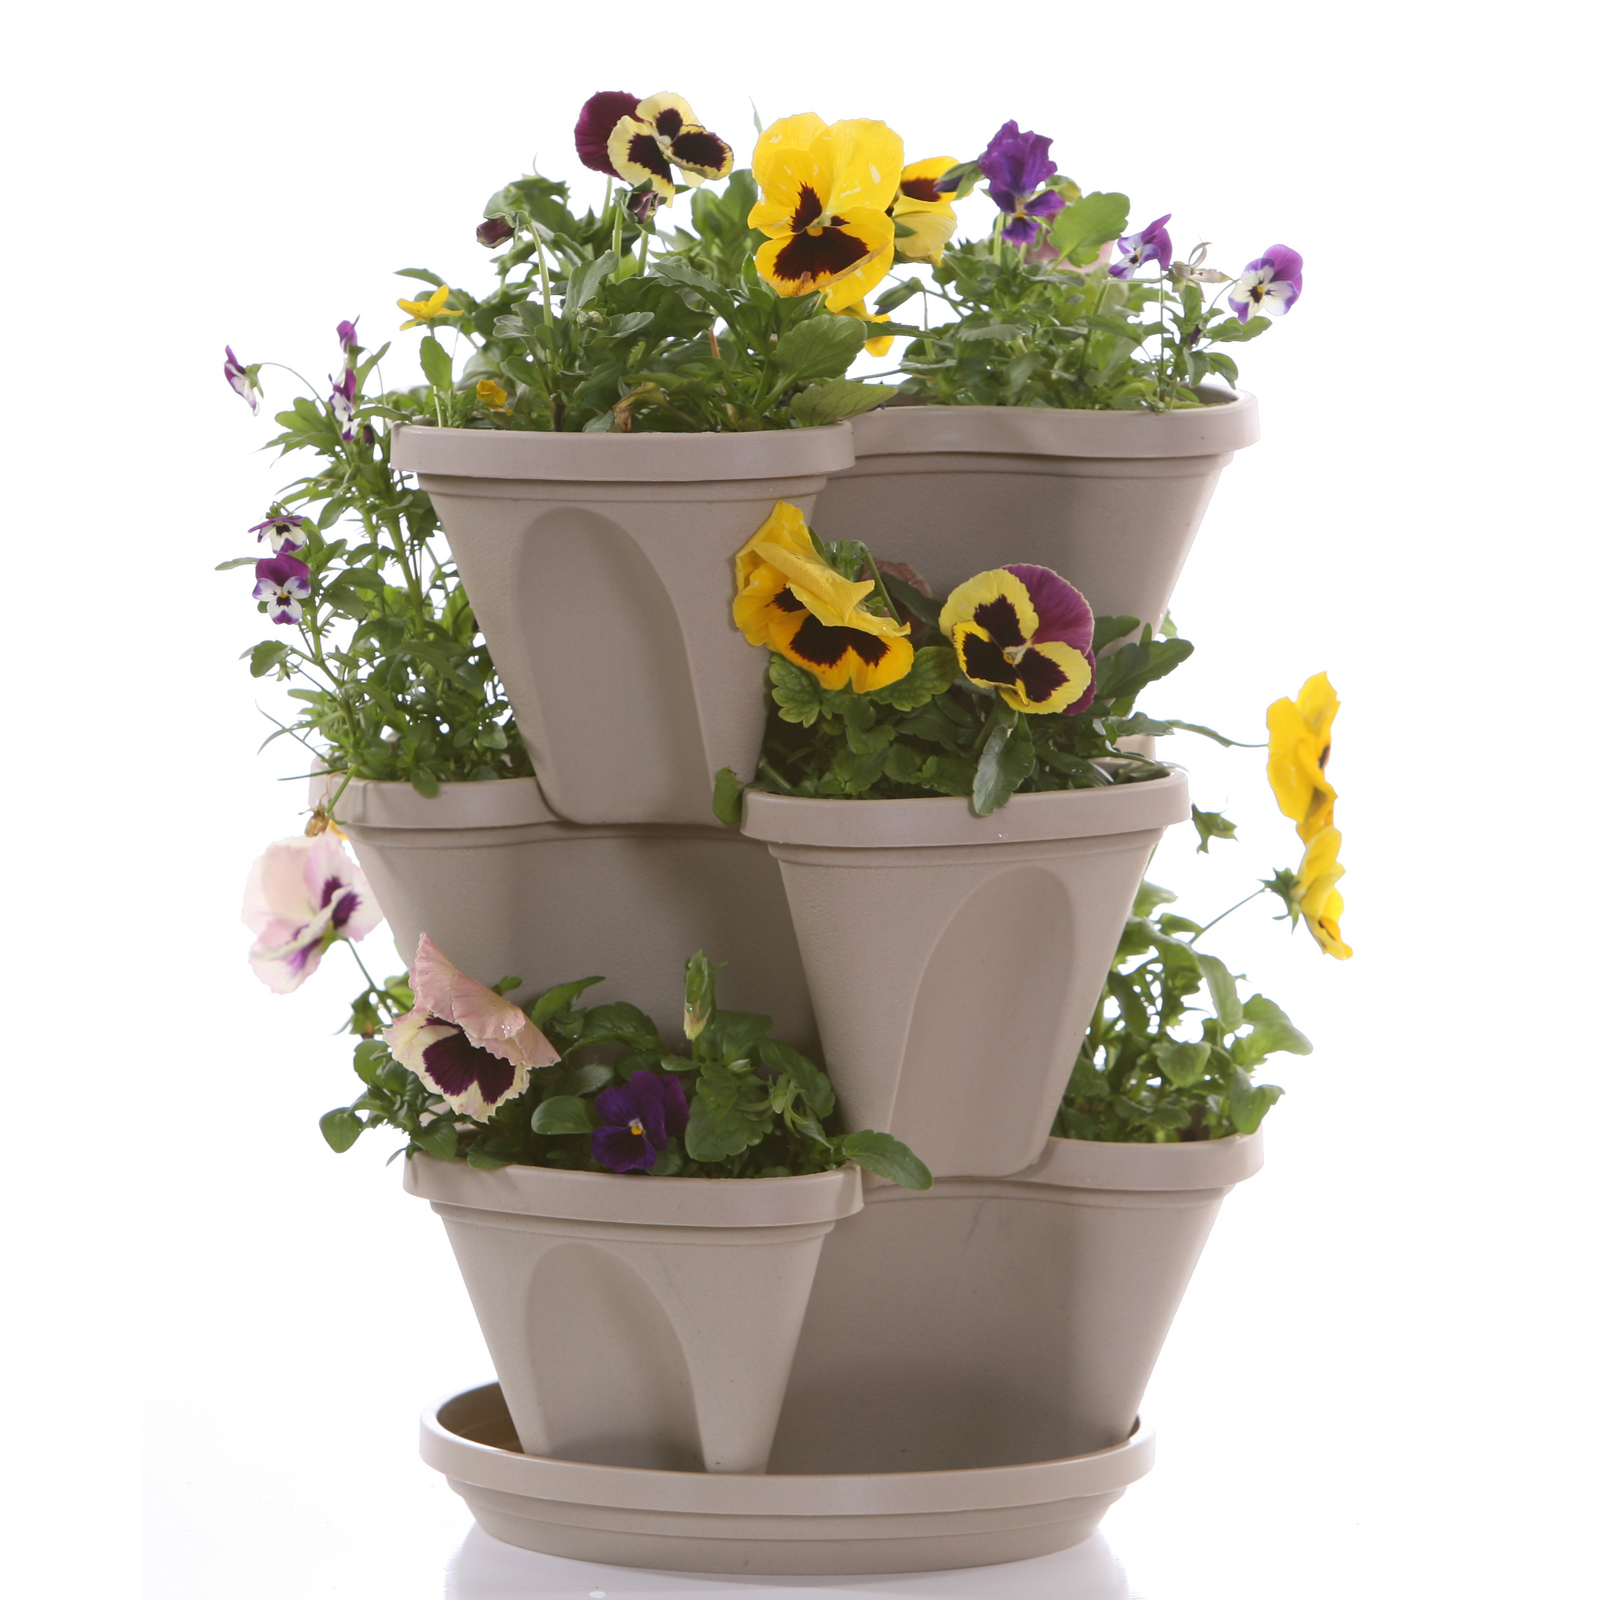 Nancy janes p1360 12-inch stacking planters with patented fl.